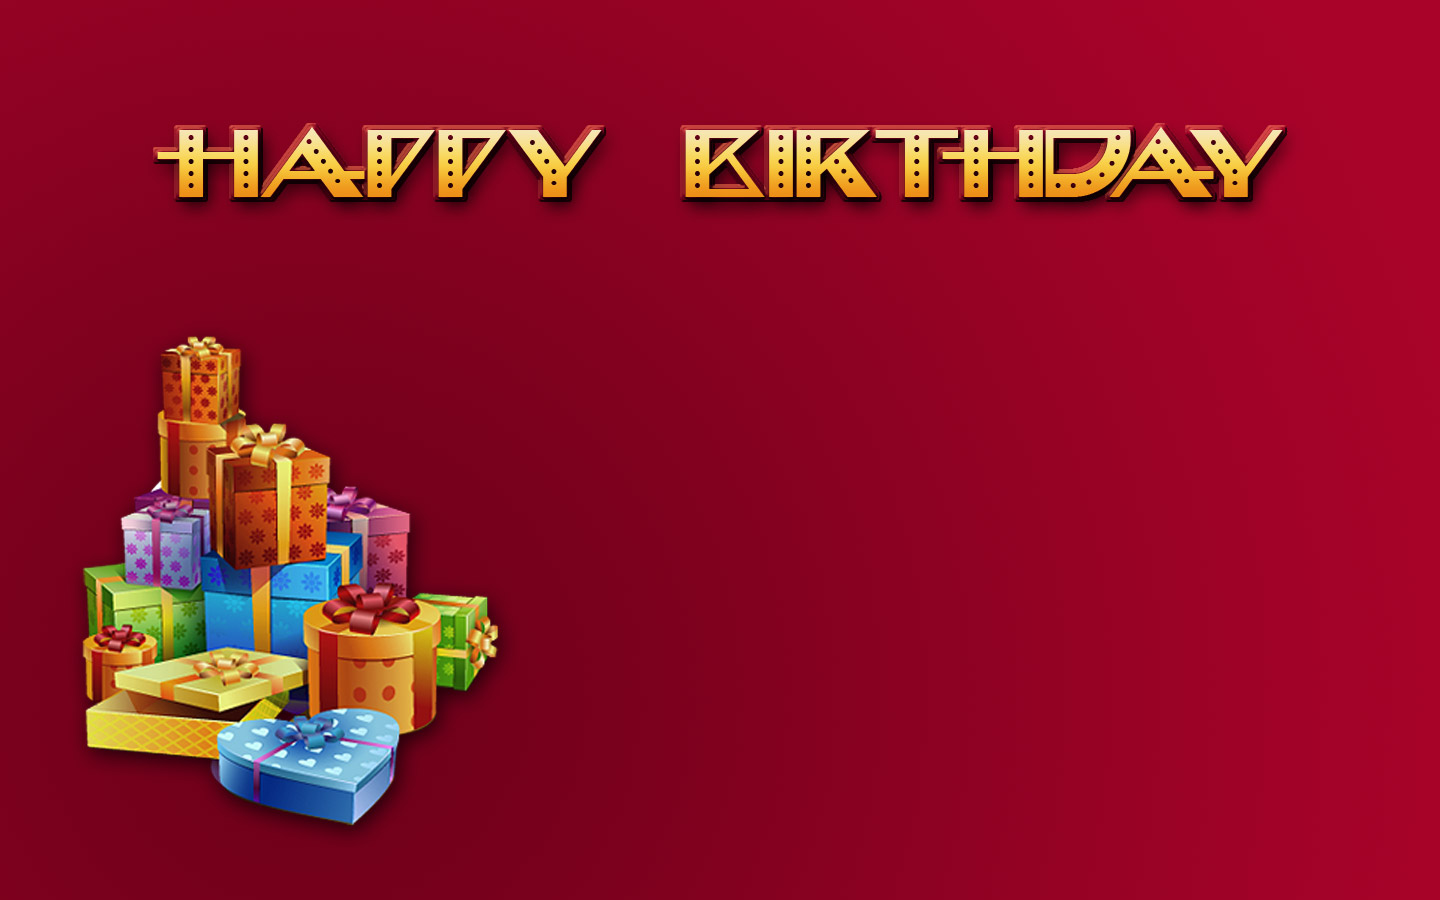 birthday images hd wallpaper ; 3bf331c8a8bf386a9739e228aed0f77f